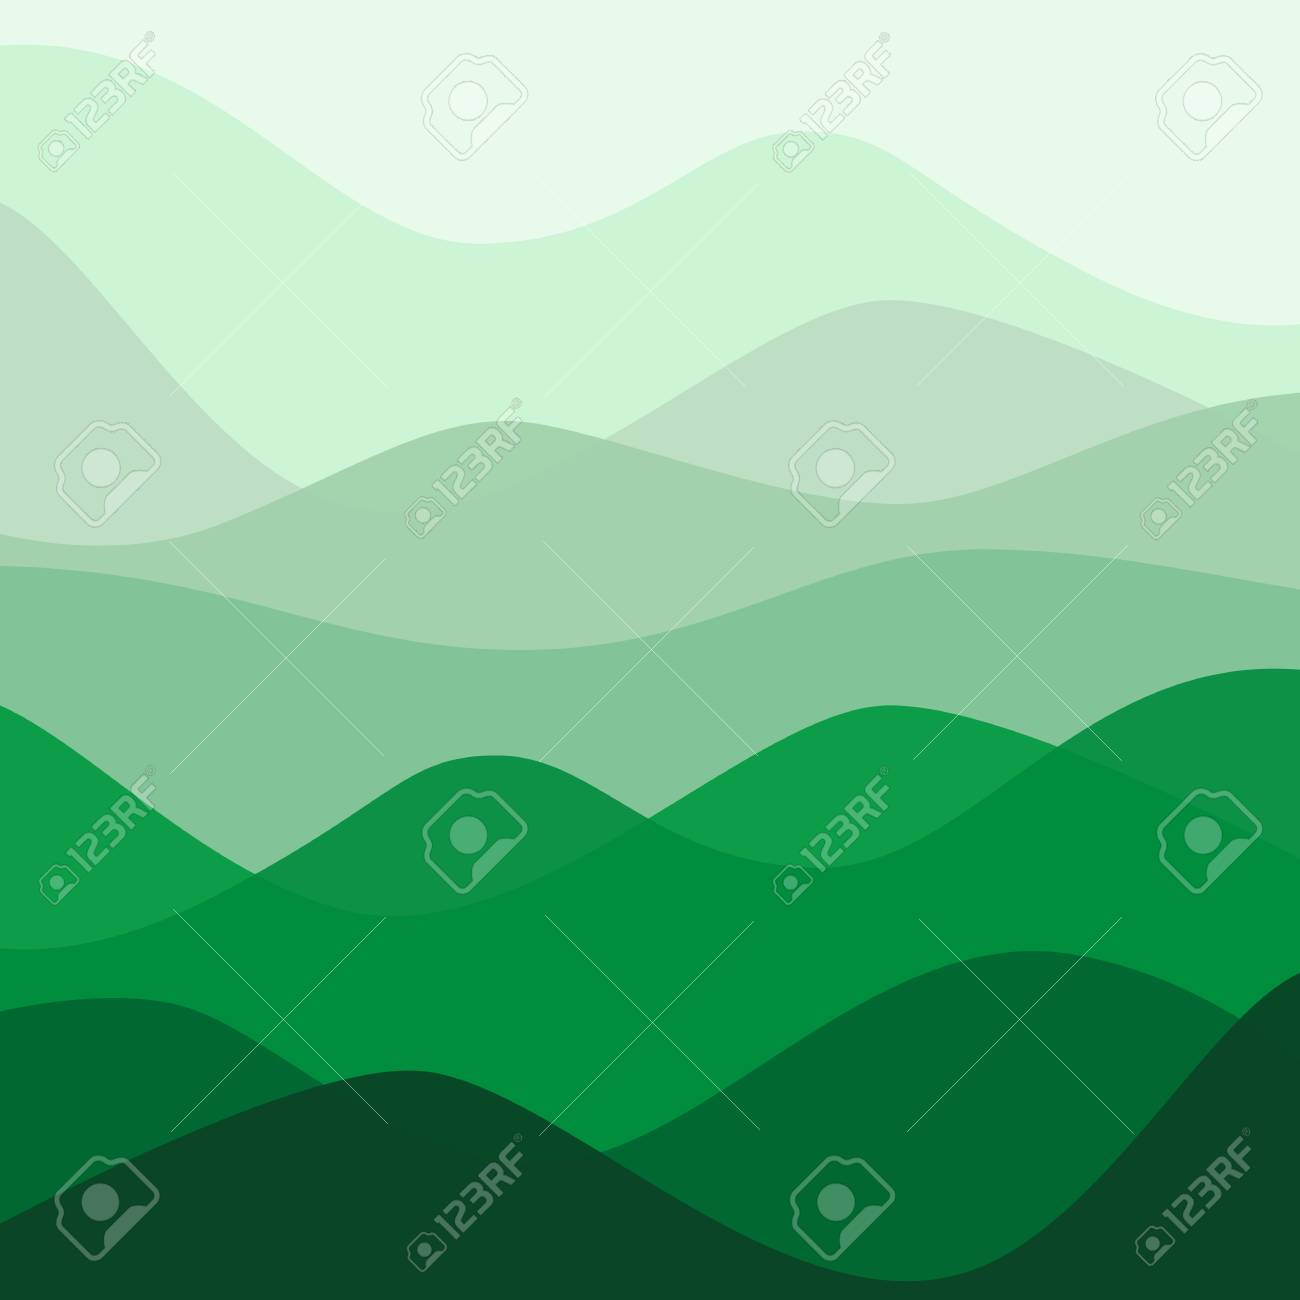 Abstract water nature landscape. Decorative square background. Vector graphic template. - 46085187